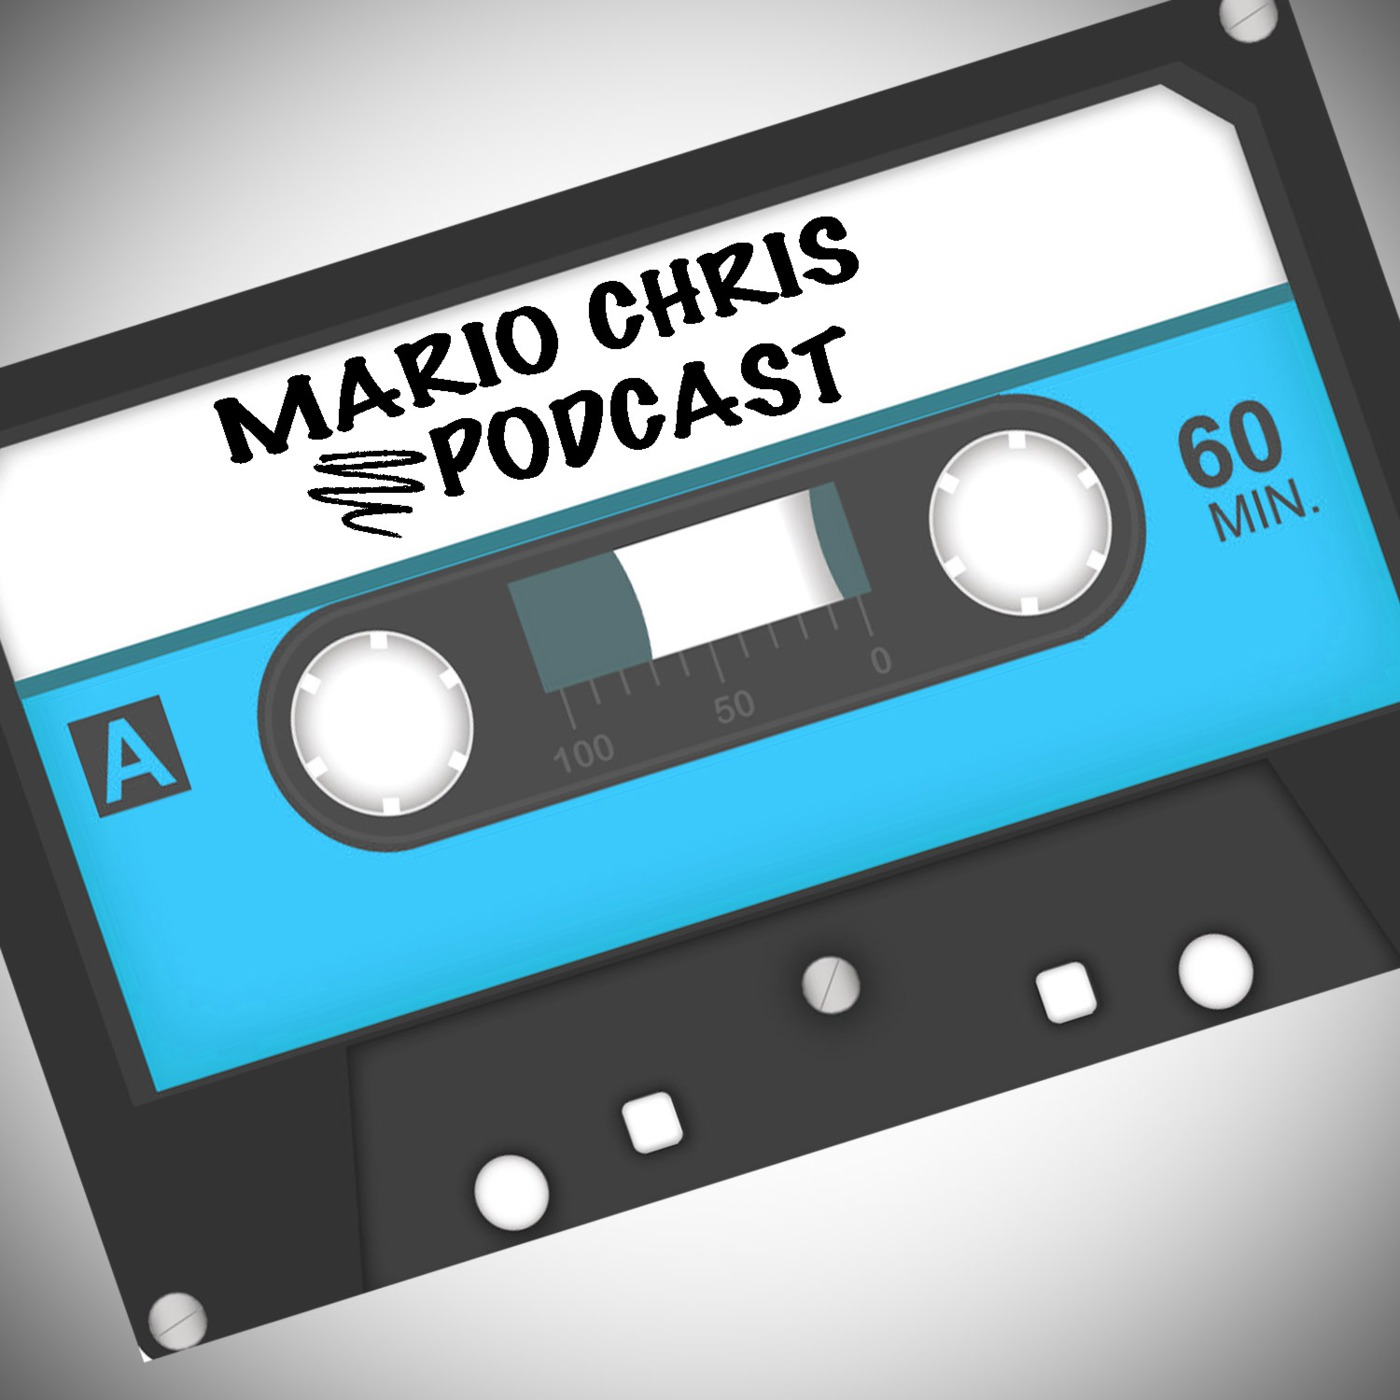 Mario Chris Podcast